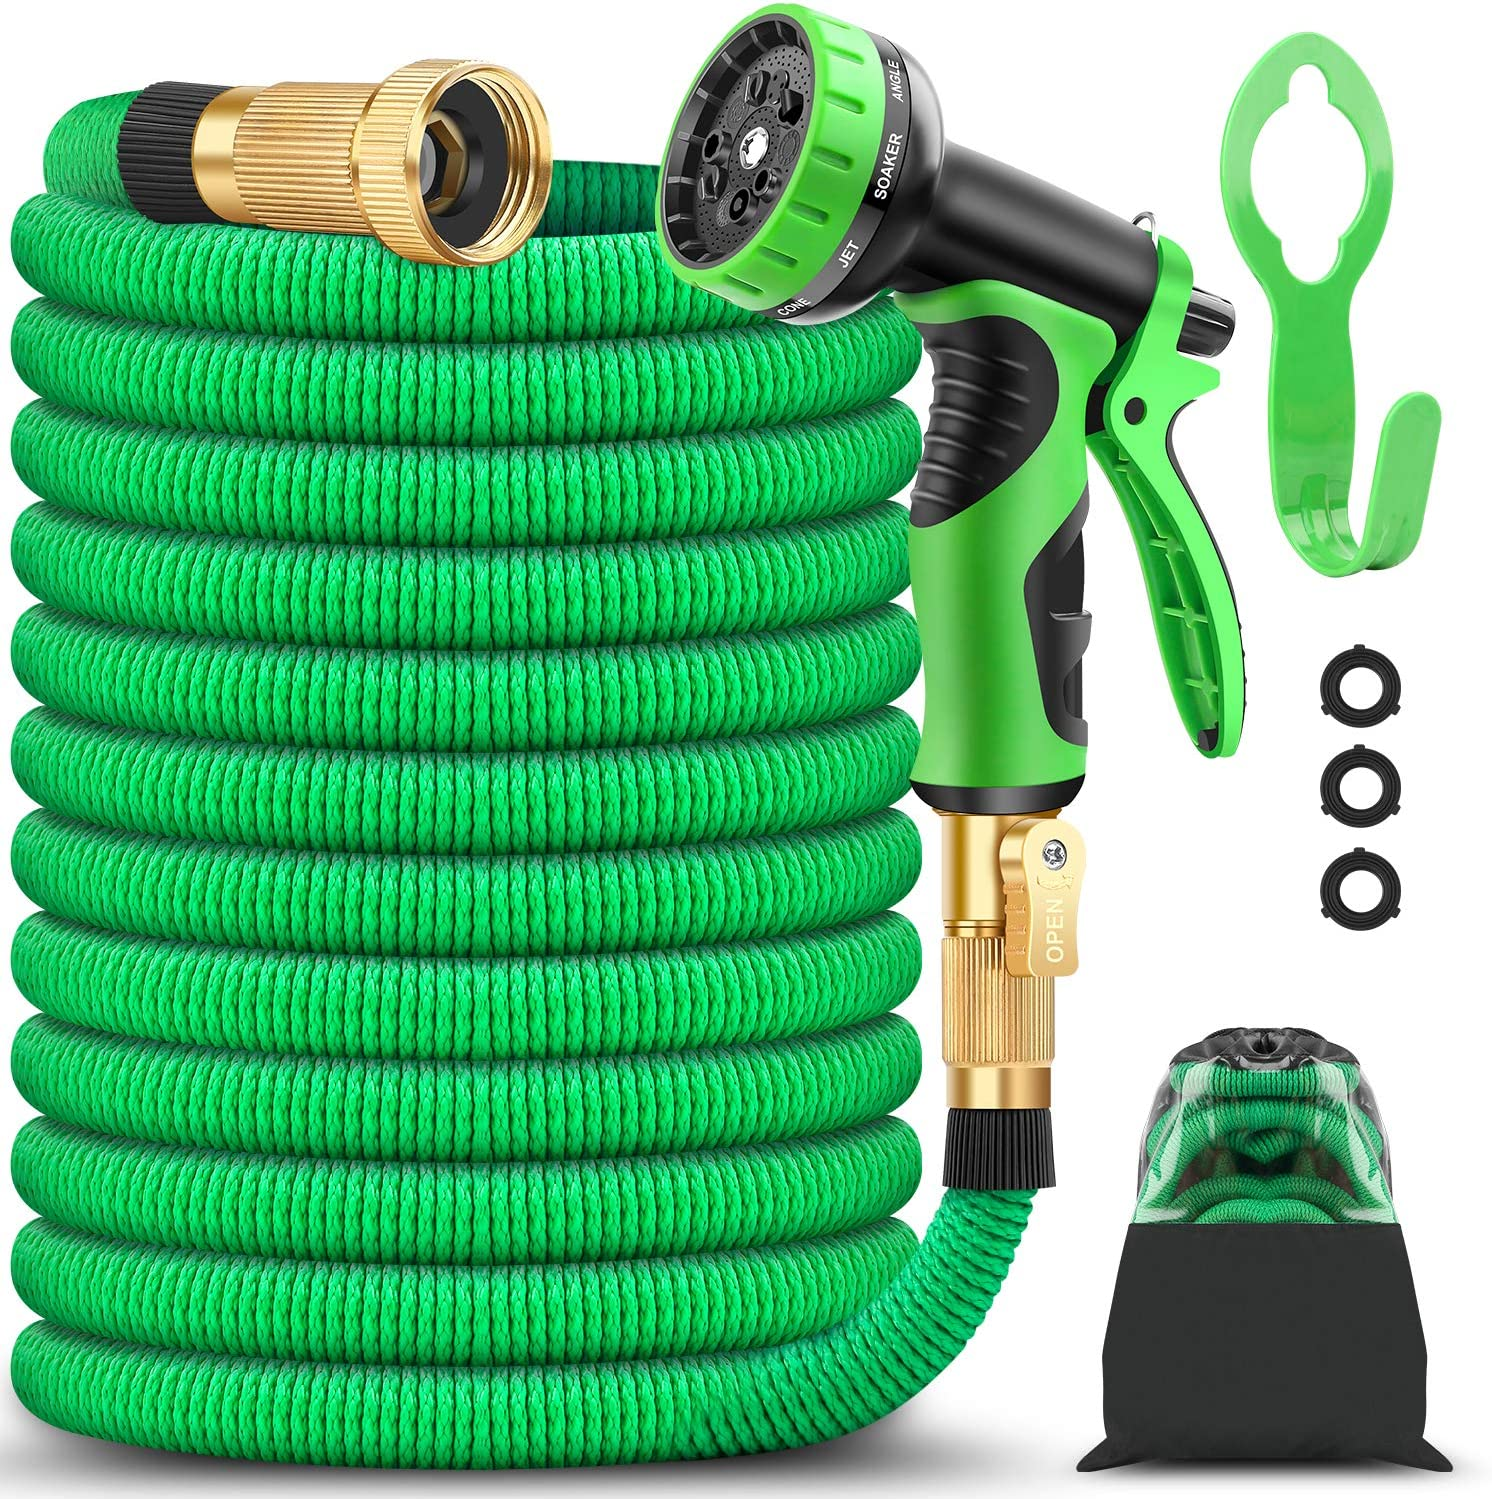 BAZOLOTA Garden Hose, Expandable 50FT Water Hose with 9 Function Nozzle, Flexible Gardening Hose with All Brass Connectors, Leakproof Durable Expanding Lightweight Watering Hose Pipe